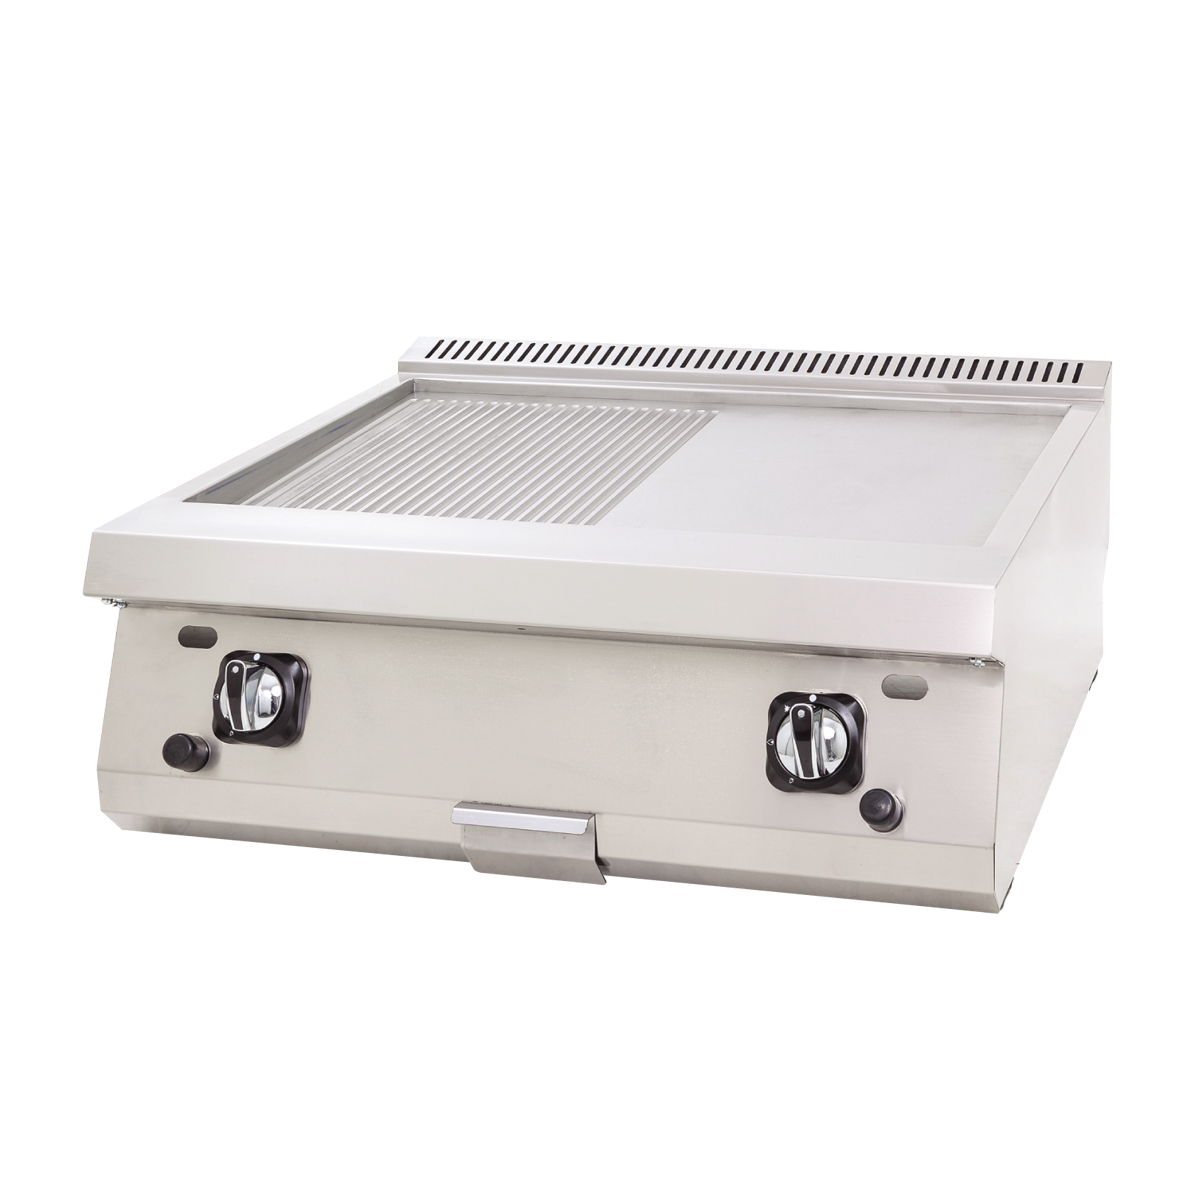 Gas Grill Flat+Grooved - 80x70